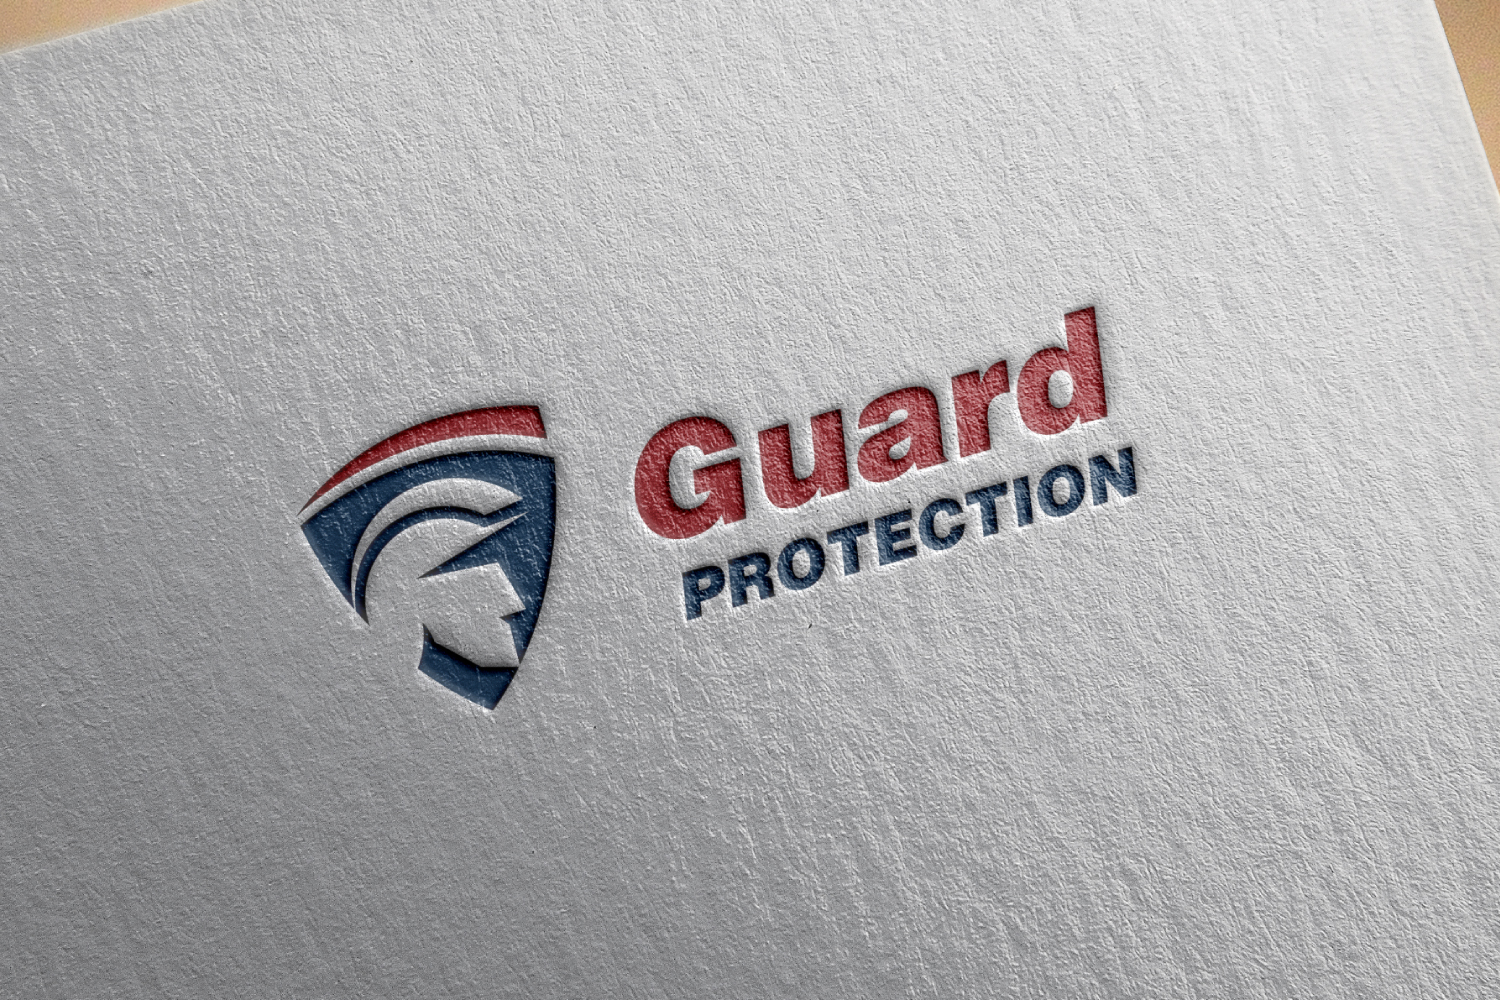 Police & Shield Logo, Guard Protection. example image 1